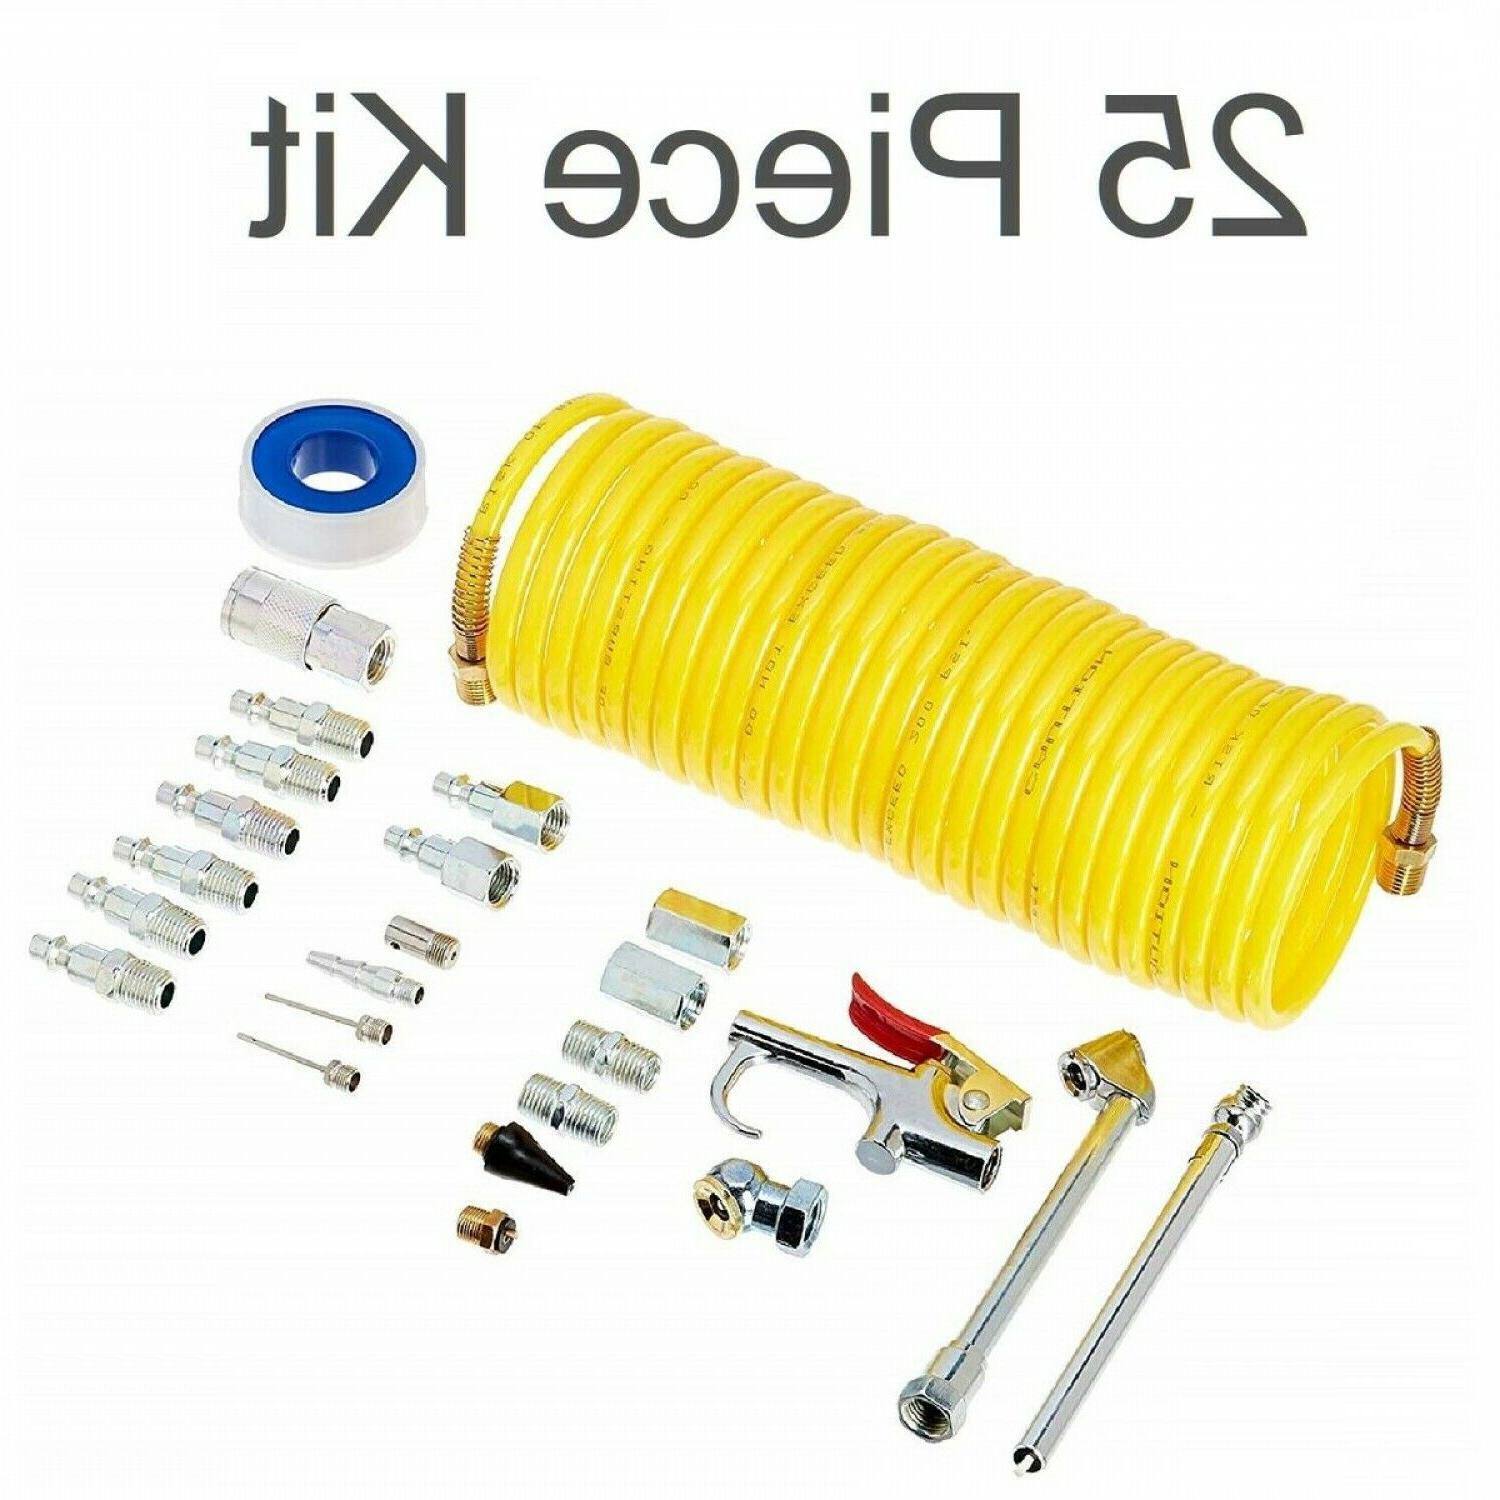 AIR COMPRESSOR ACCESSORY KIT Recoil Airhose Essential Access